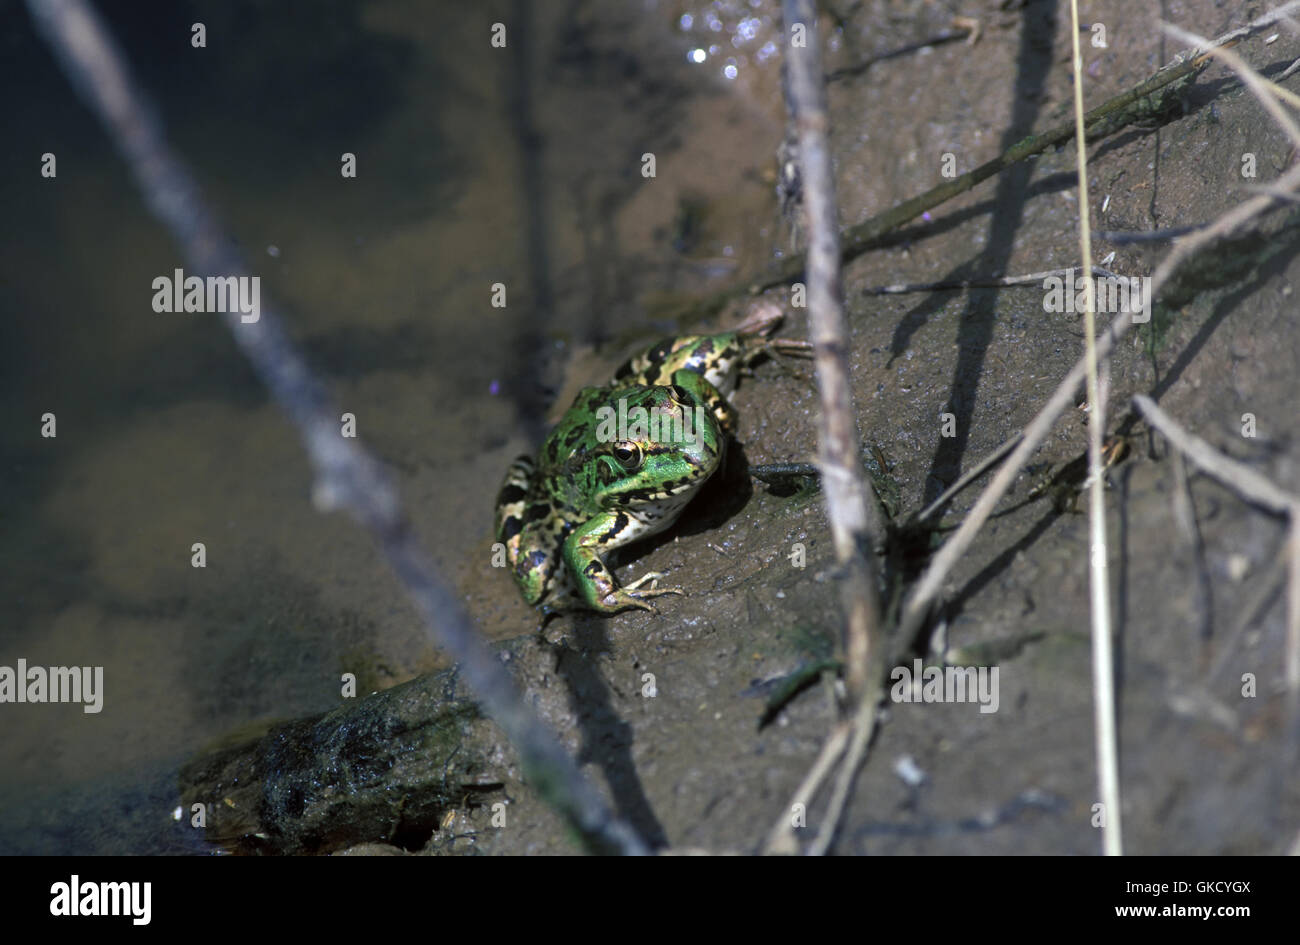 Marsh frog, Pelophylax ridibundus. On river bank. Portugal - Stock Image